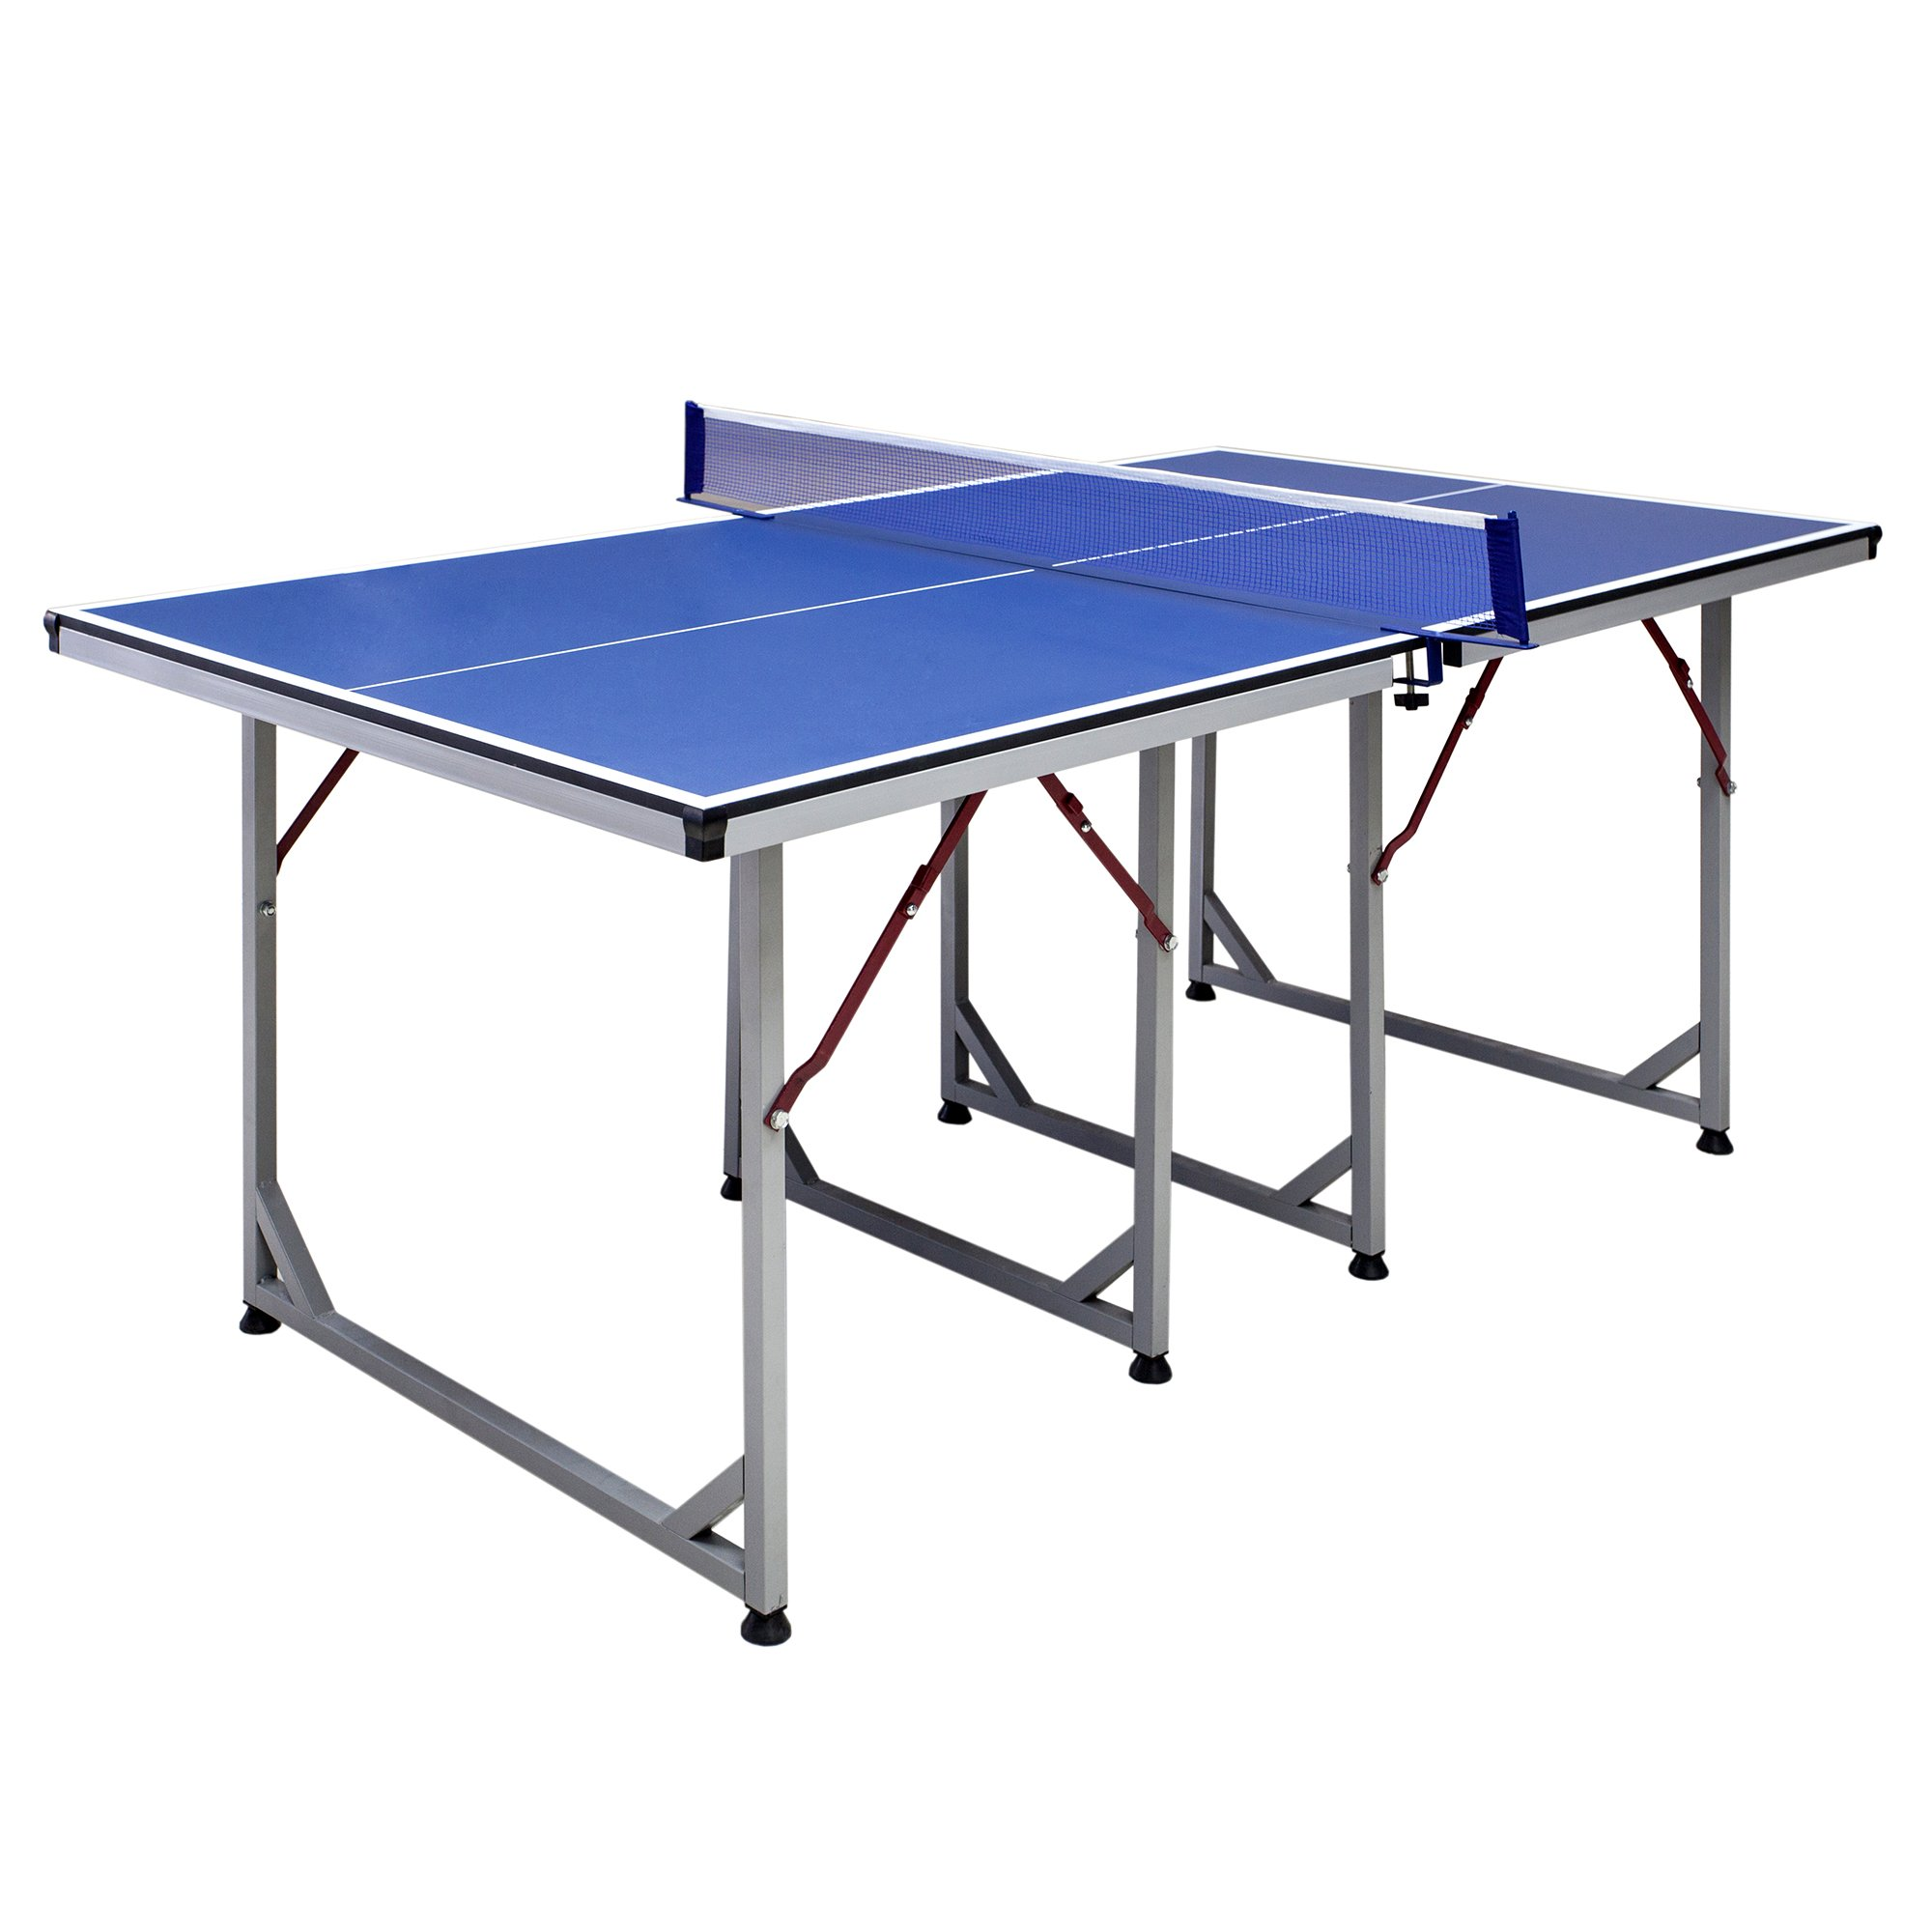 Hathaway Reflex Mid-Sized 6' Table Tennis Table by Hathaway